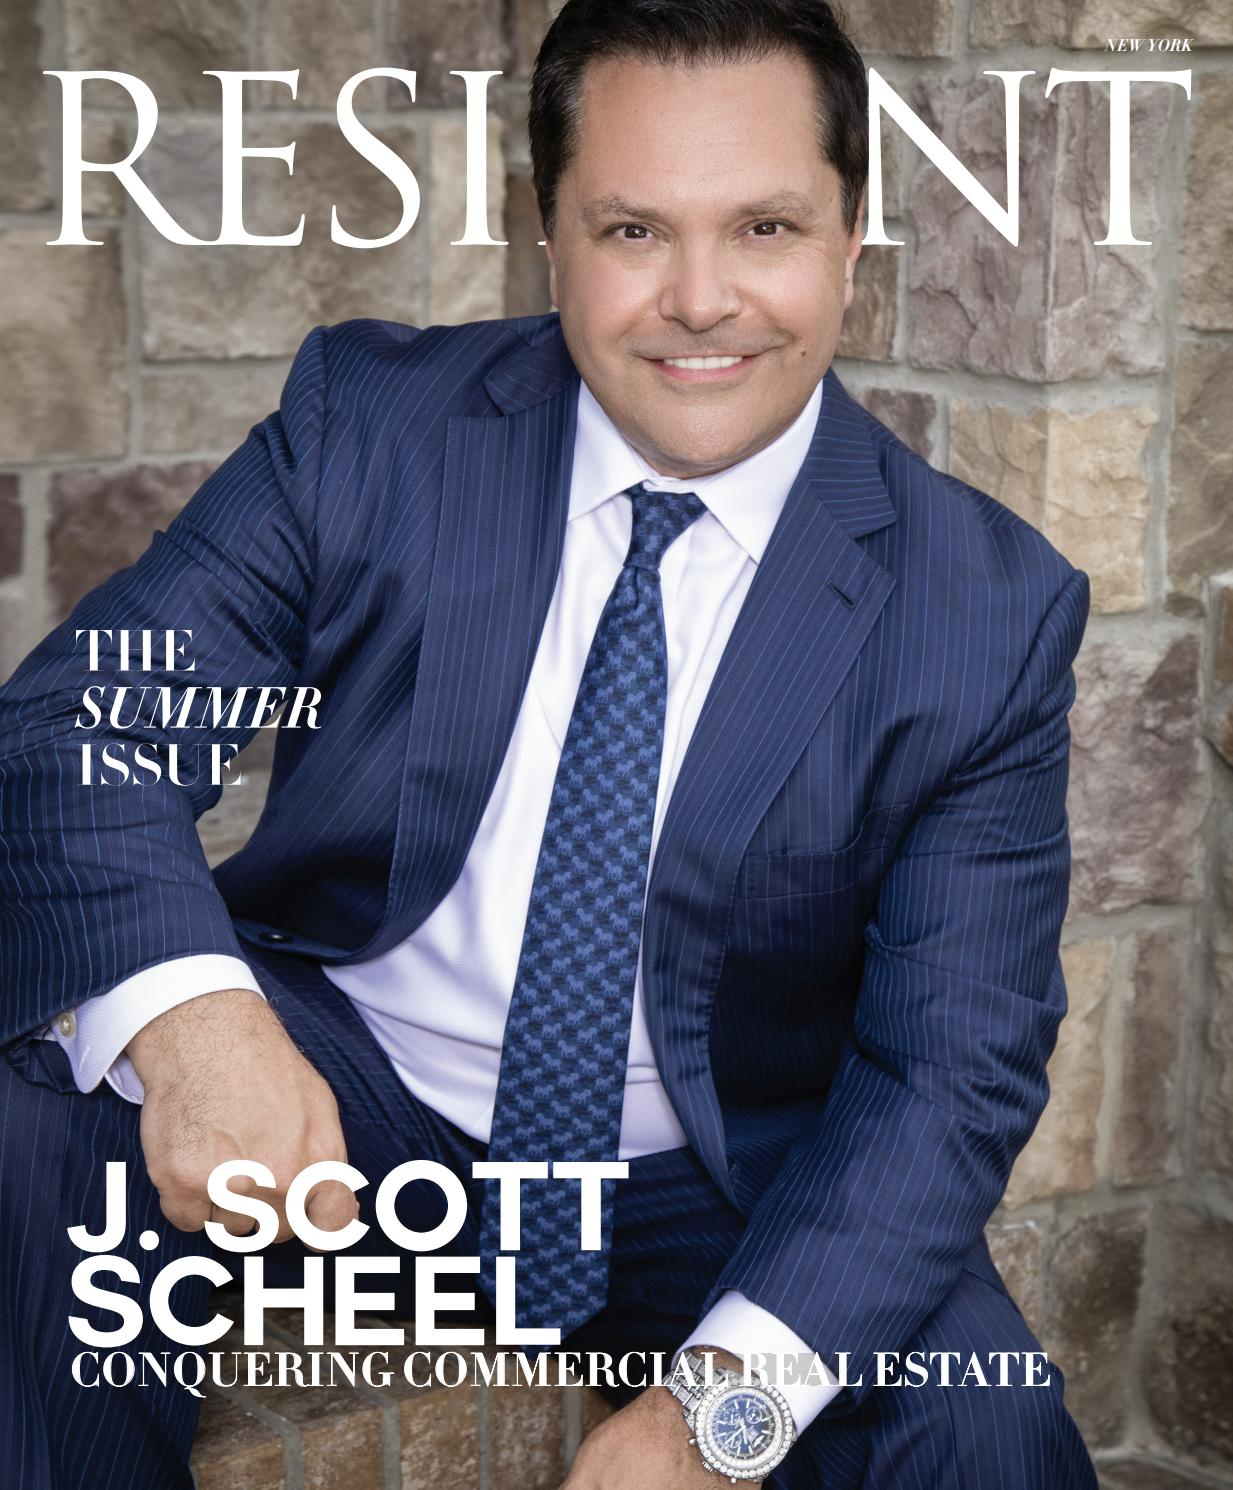 Resident Magazine NY AUGUST 2019_J  SCOTT SCHEEL by Resident